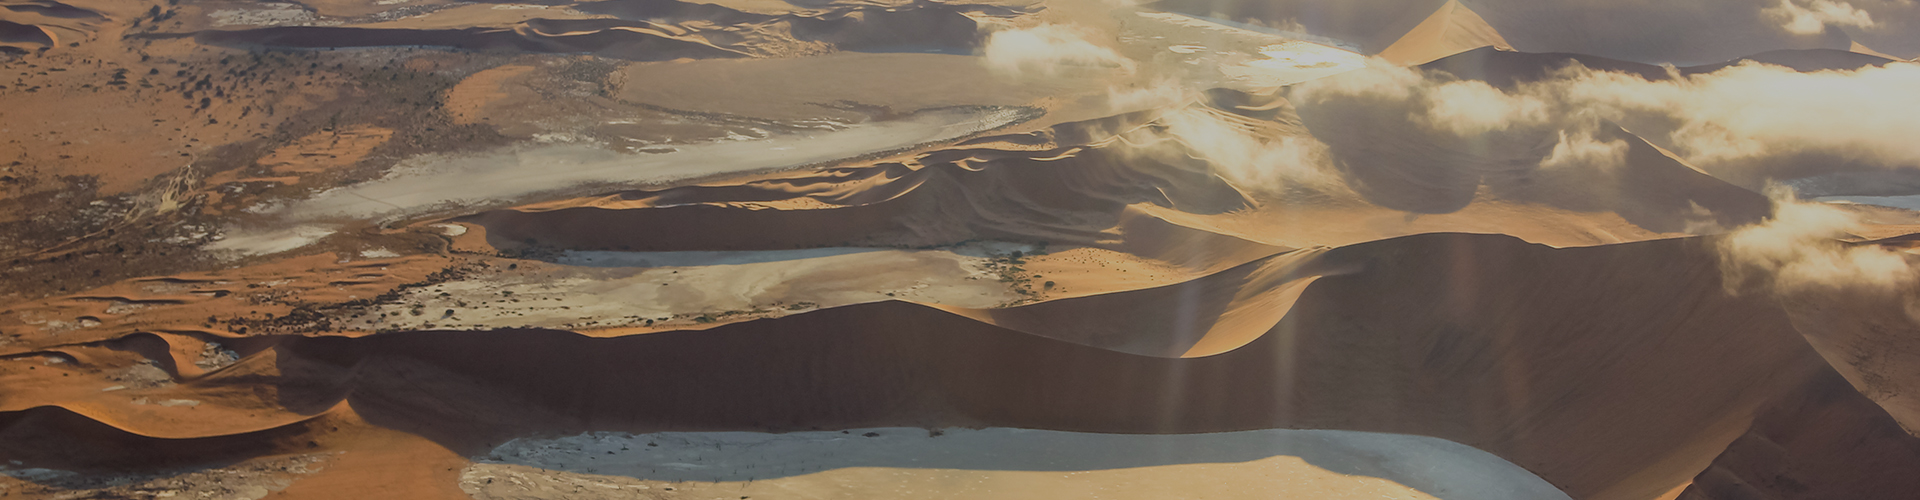 Landmark photograph of Namibia